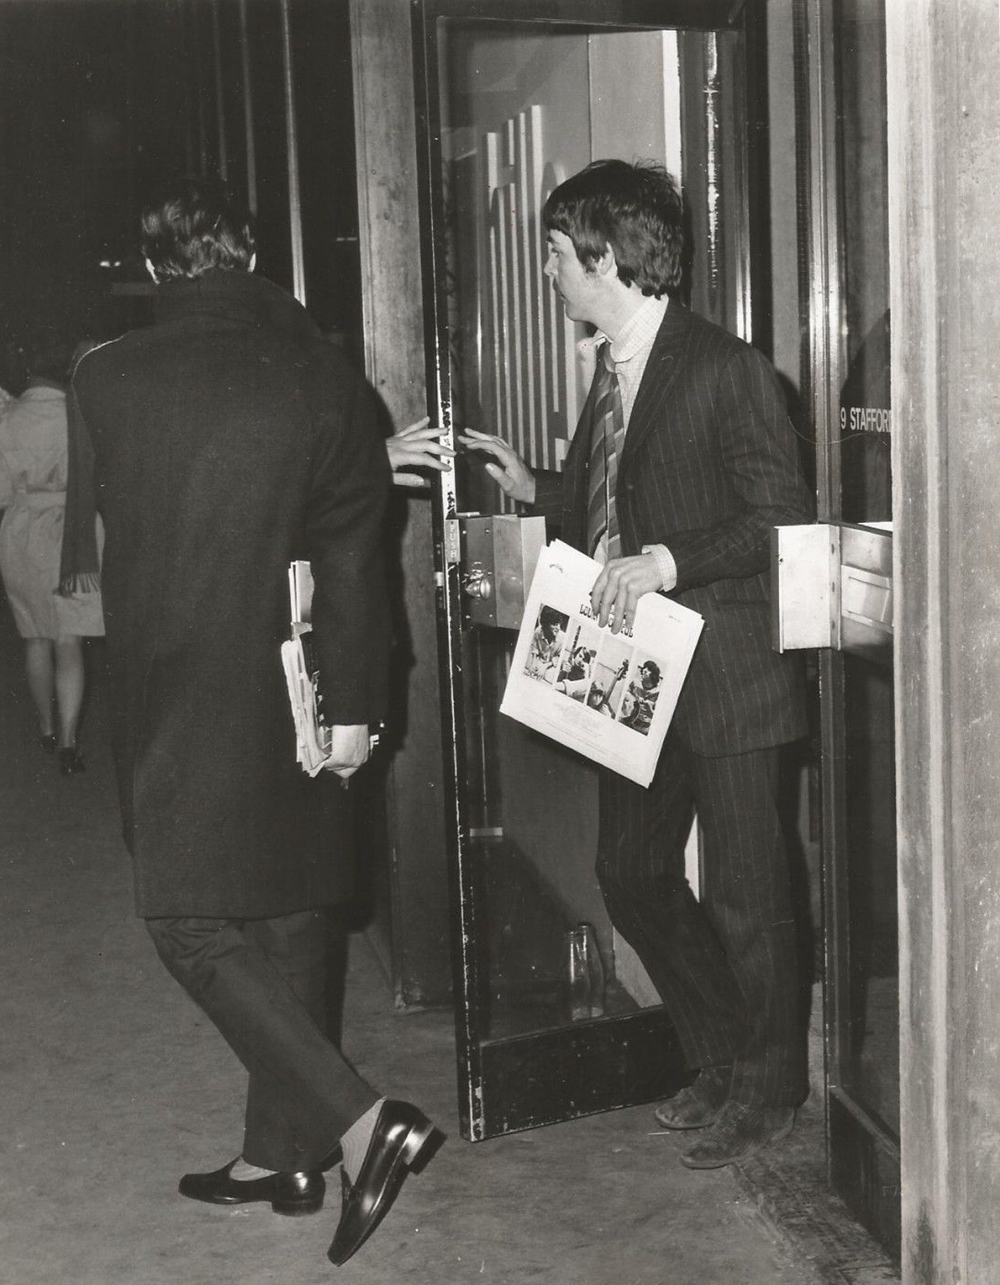 Ap News Wire   The Beatles In The News Paul Mccartney Ap Newswire Press